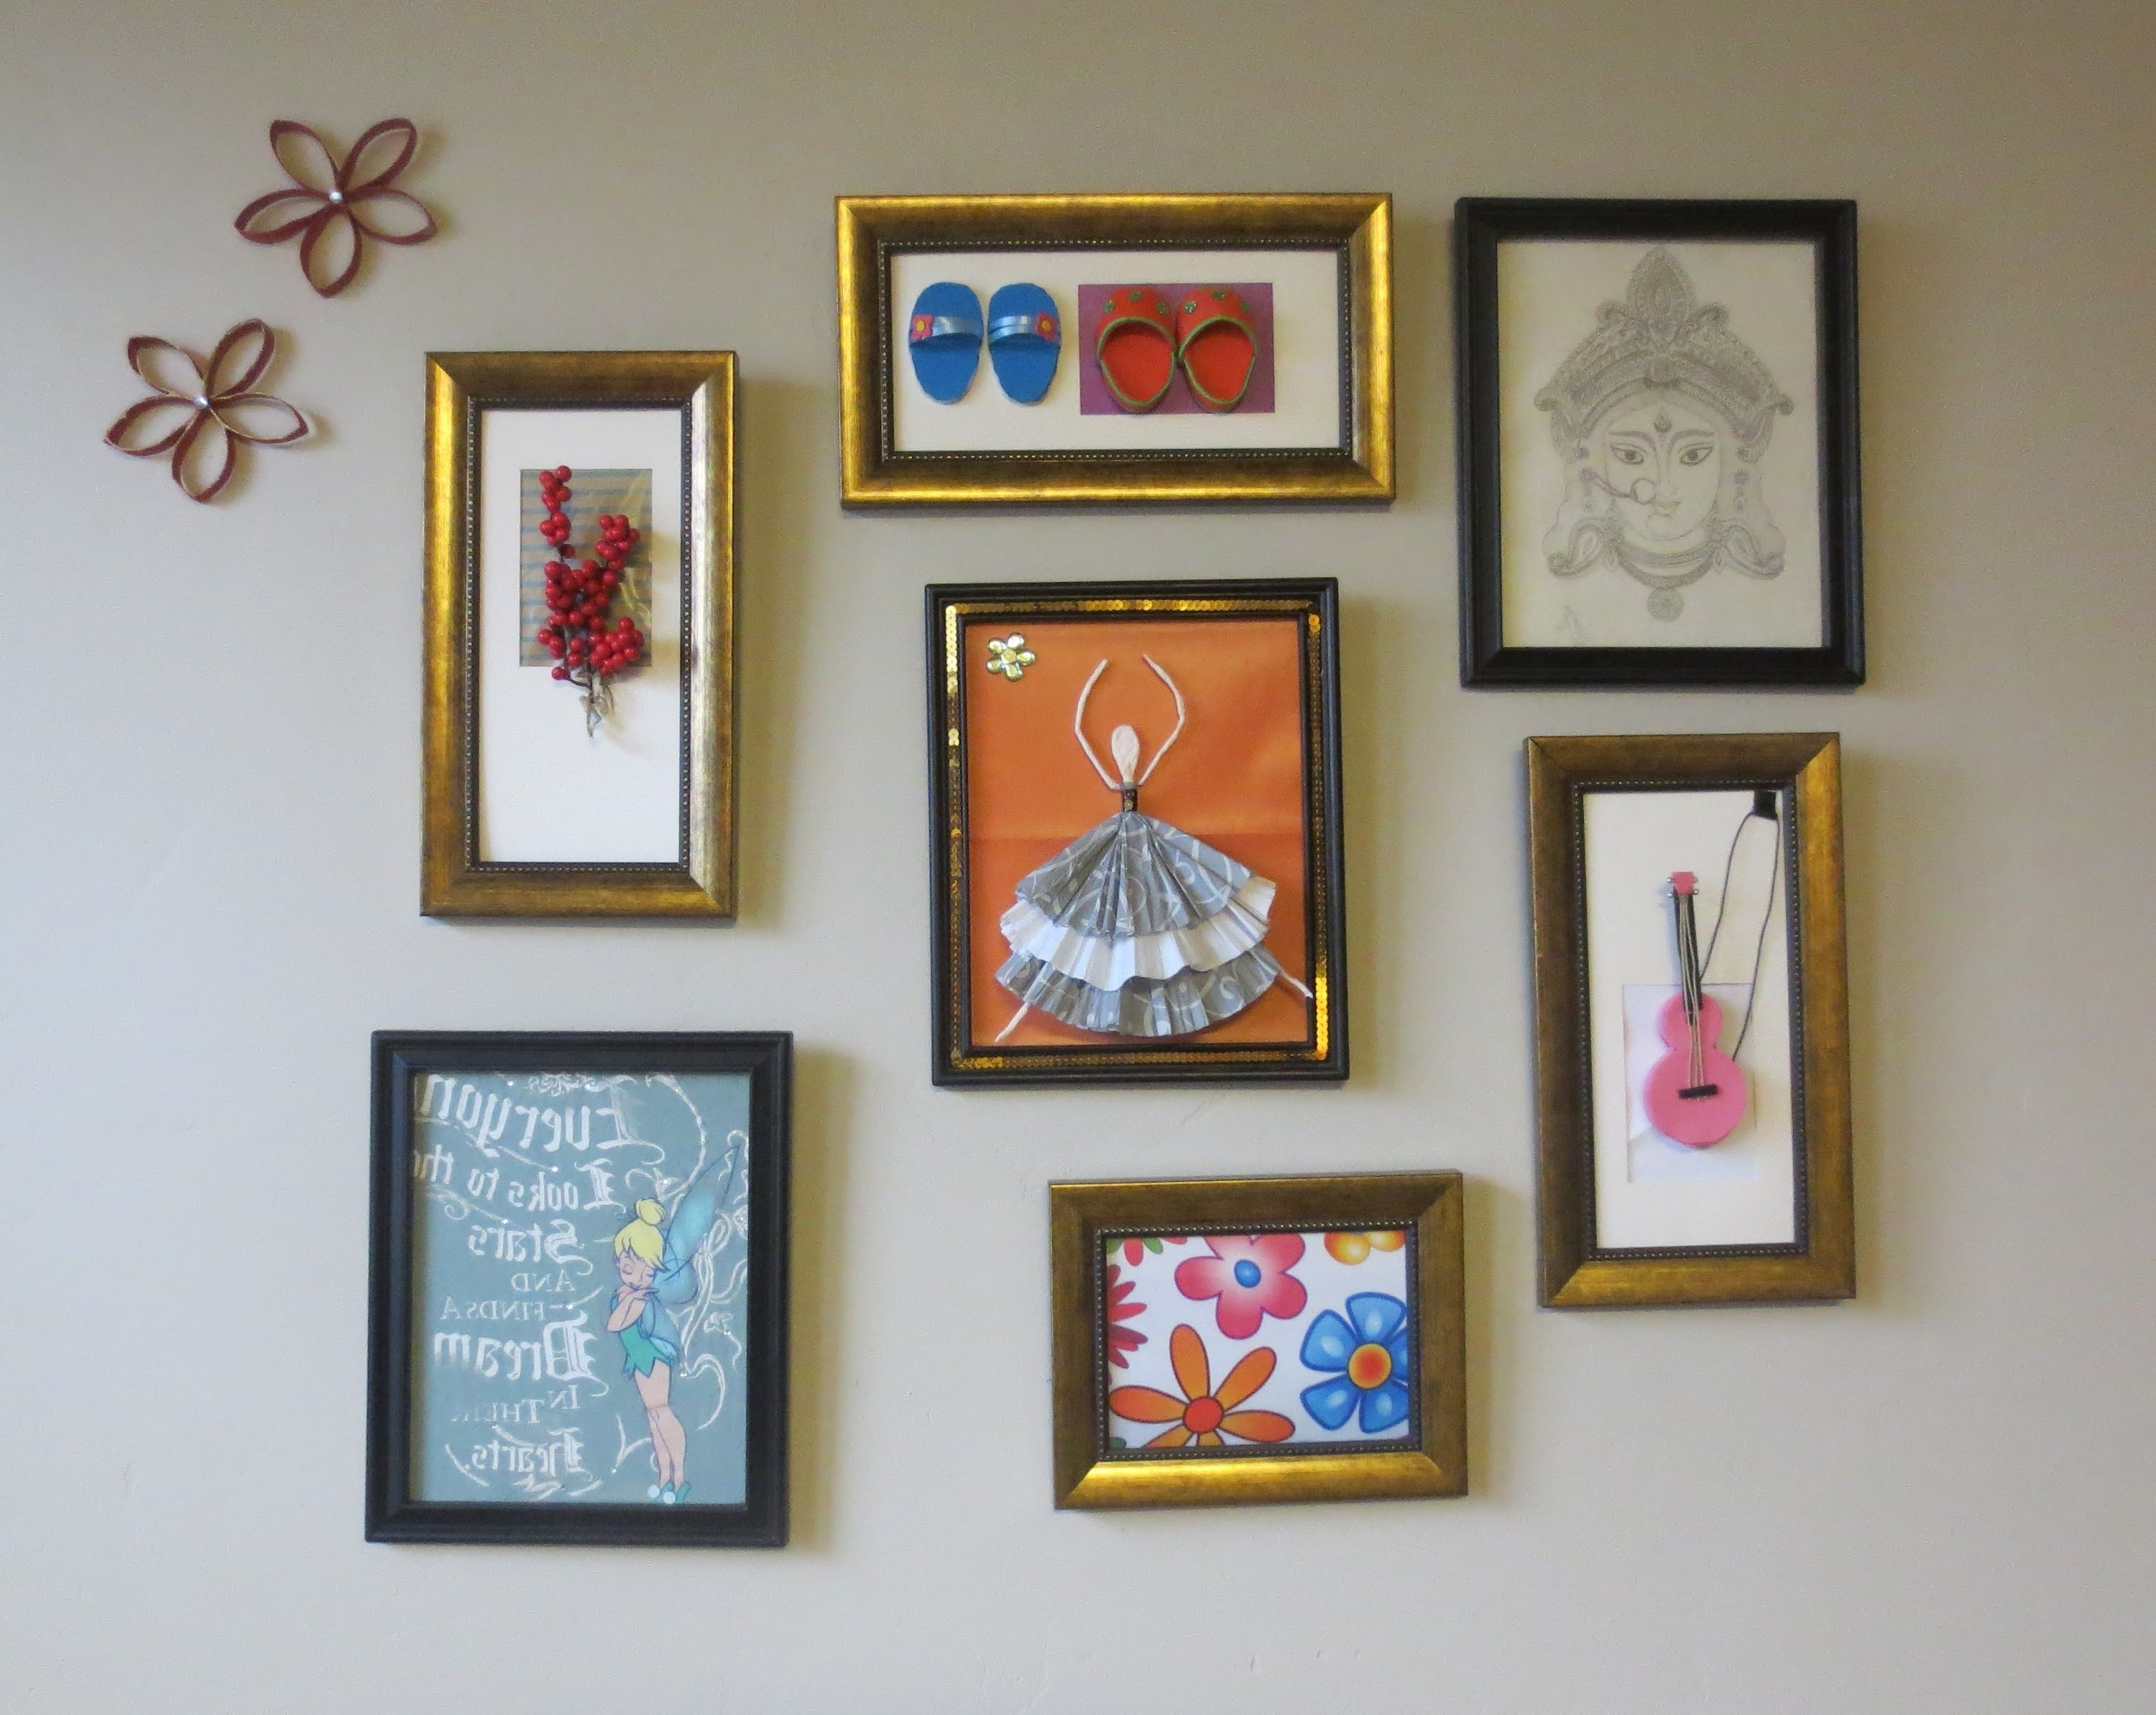 Famous Cheap Framed Wall Art With Regard To Home Decor : Tshirt Graphic & 3d Wall Art Picture Frame Collage (View 5 of 20)